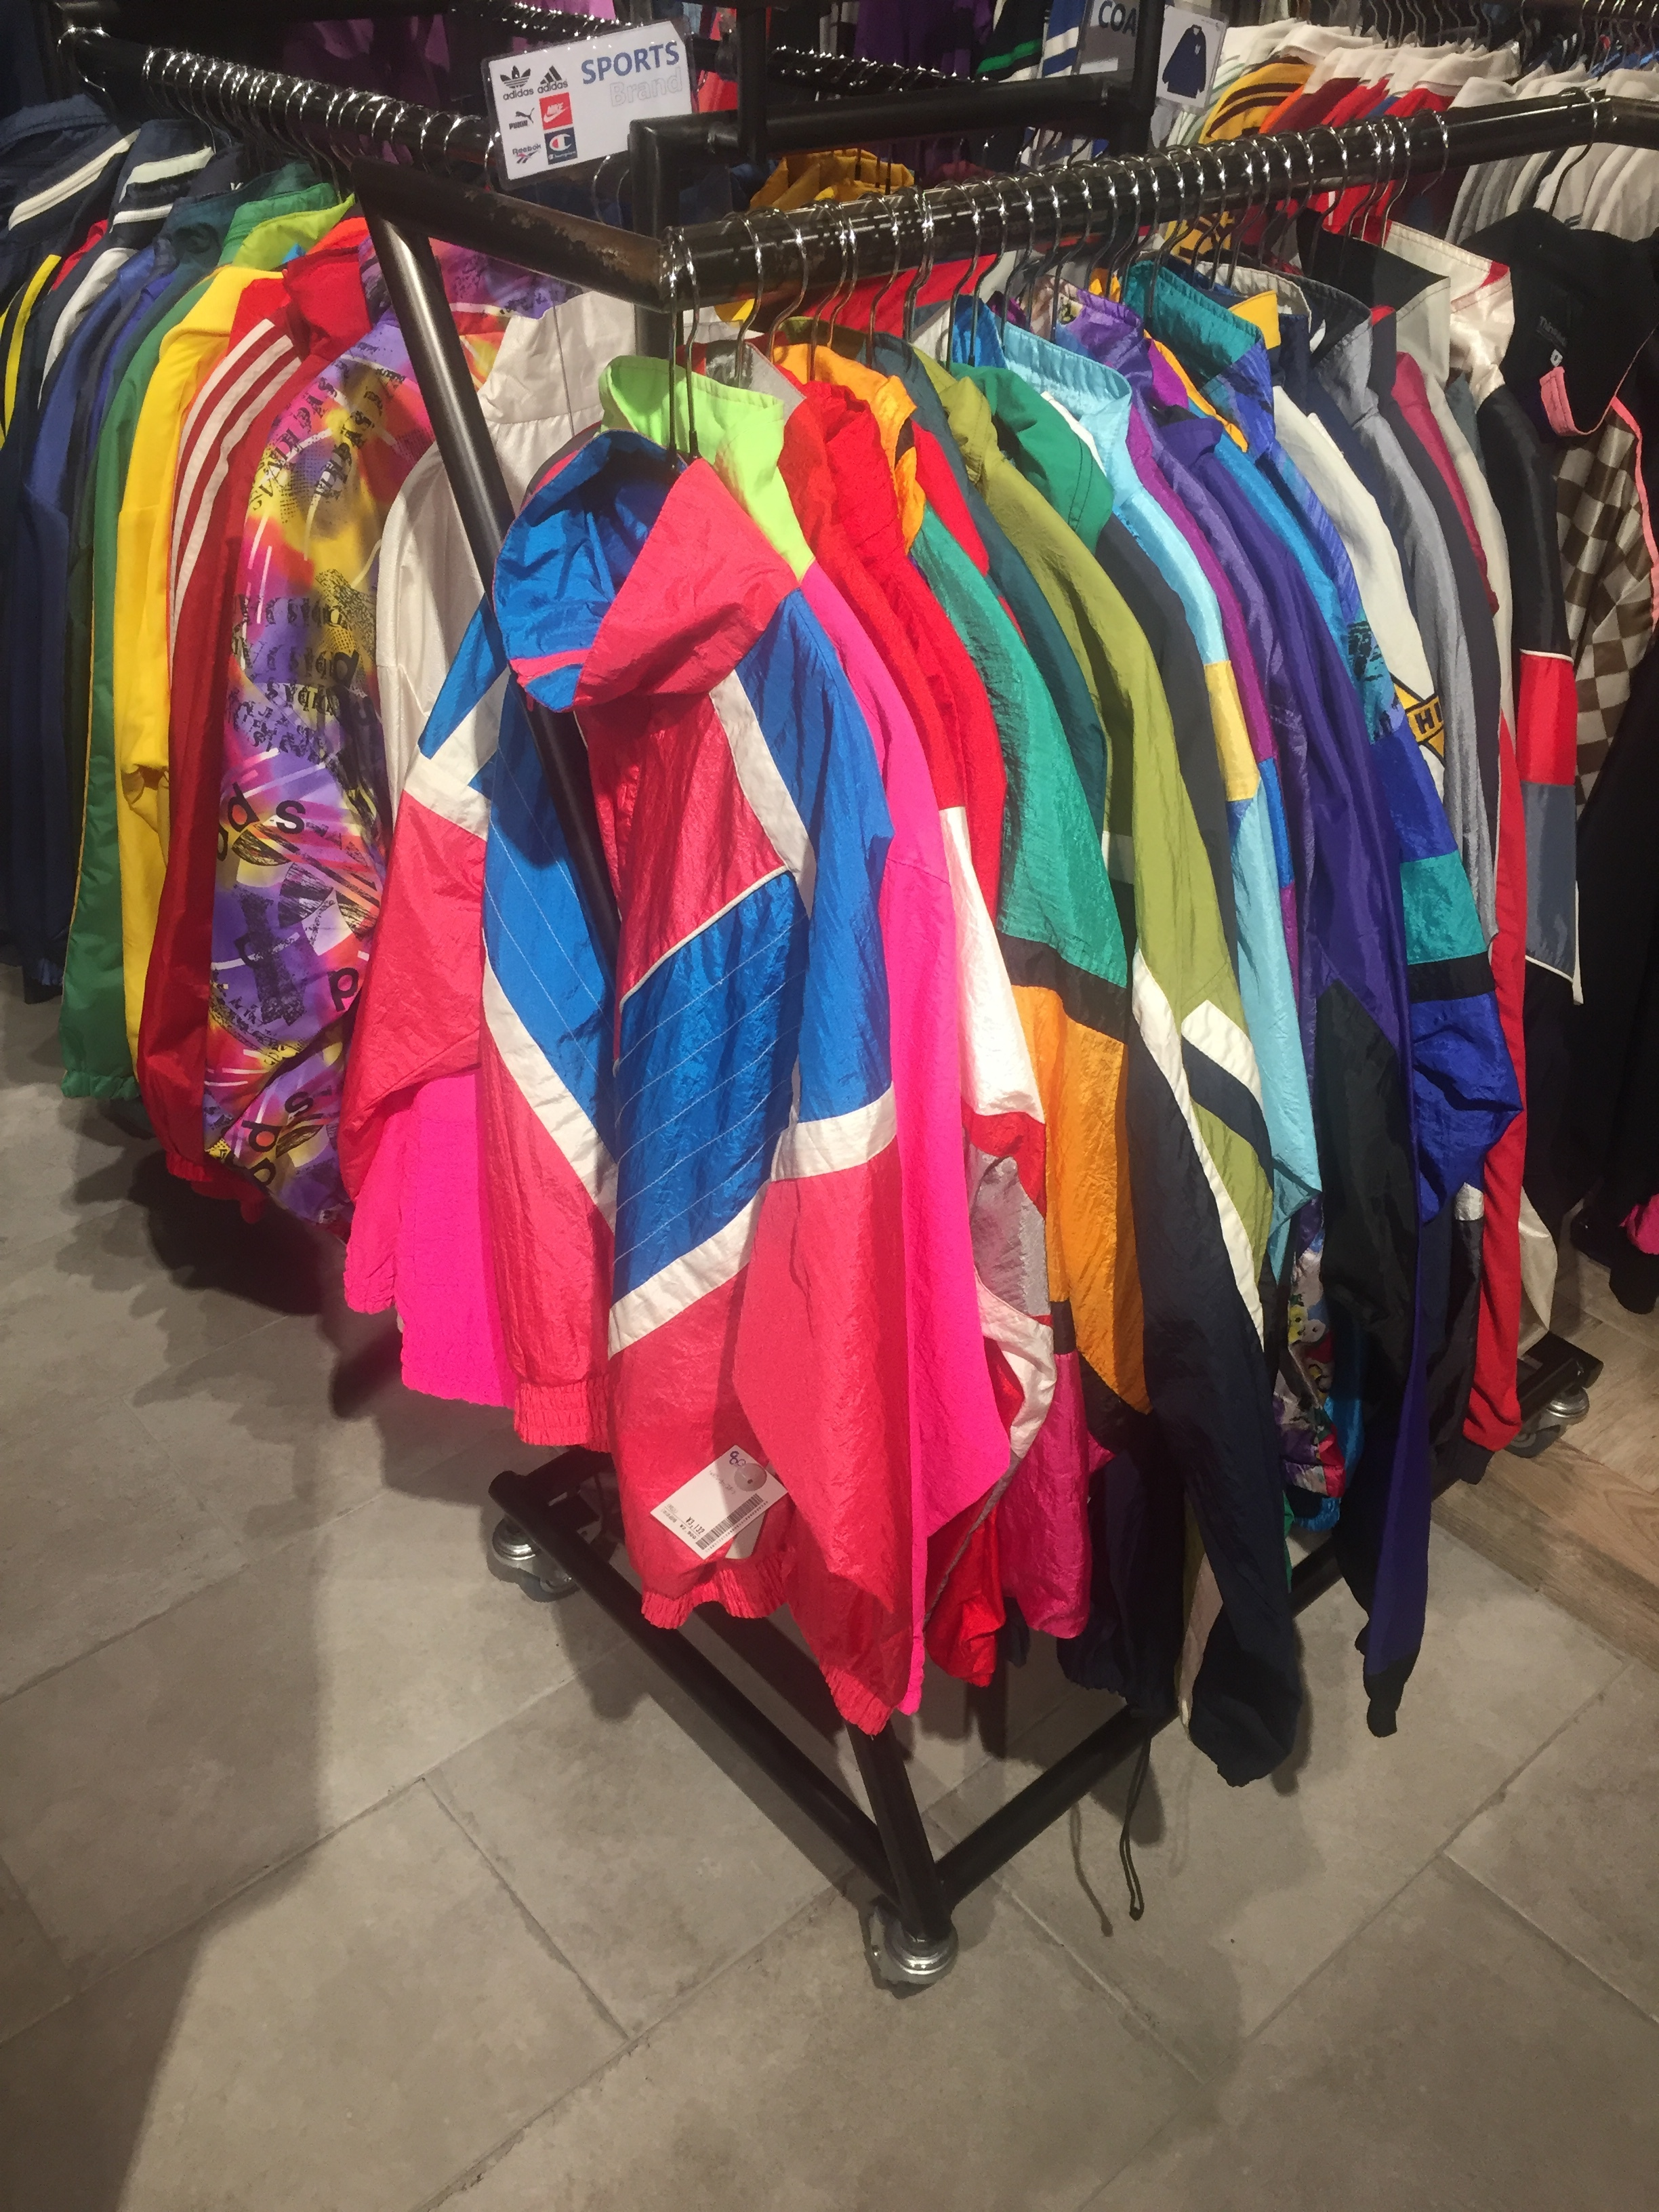 harajuku ski jackets from the 90s.JPG